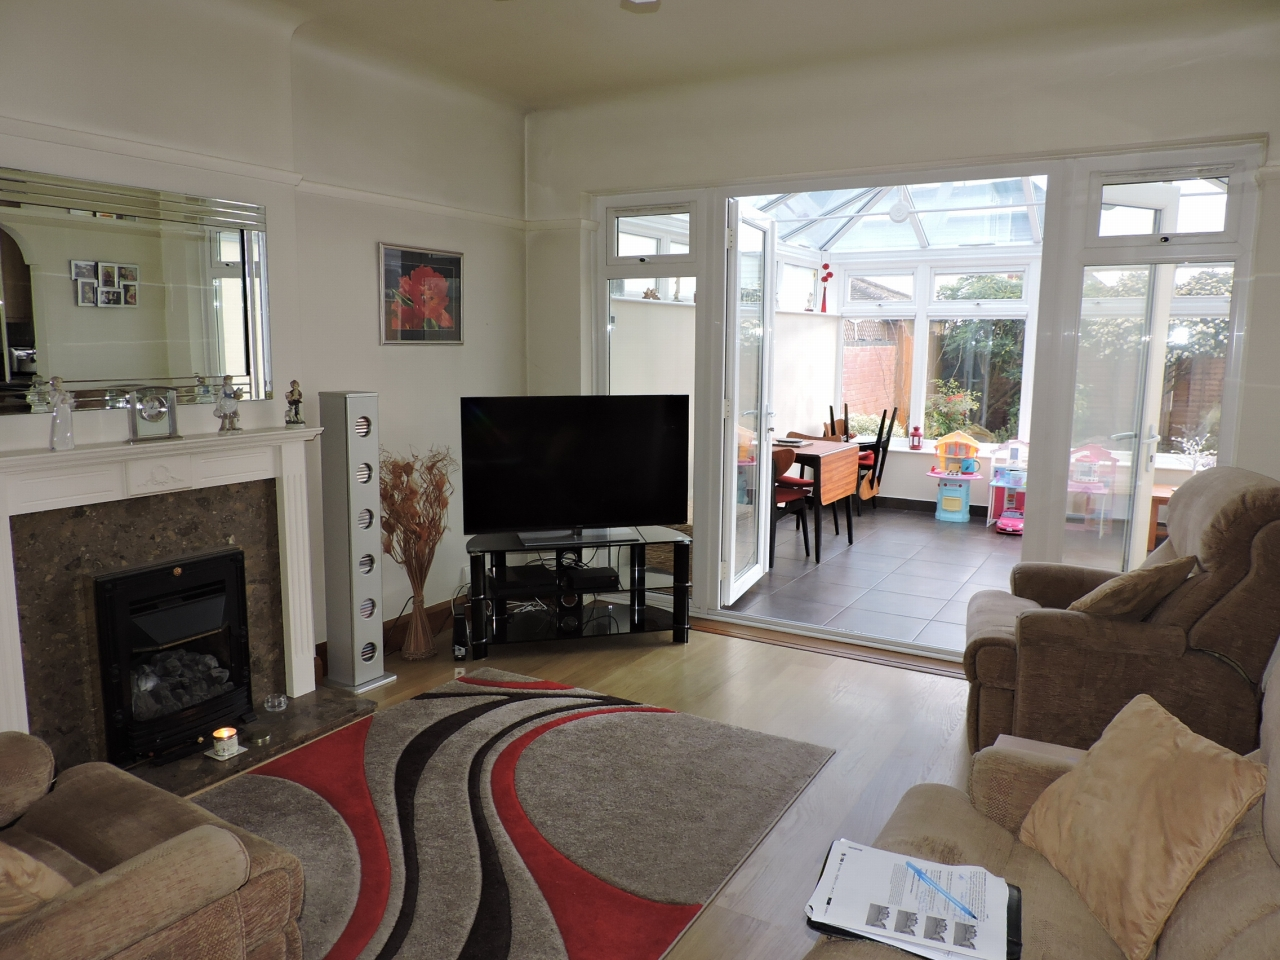 4 bedroom detached house SSTC in New Malden - Photograph 4